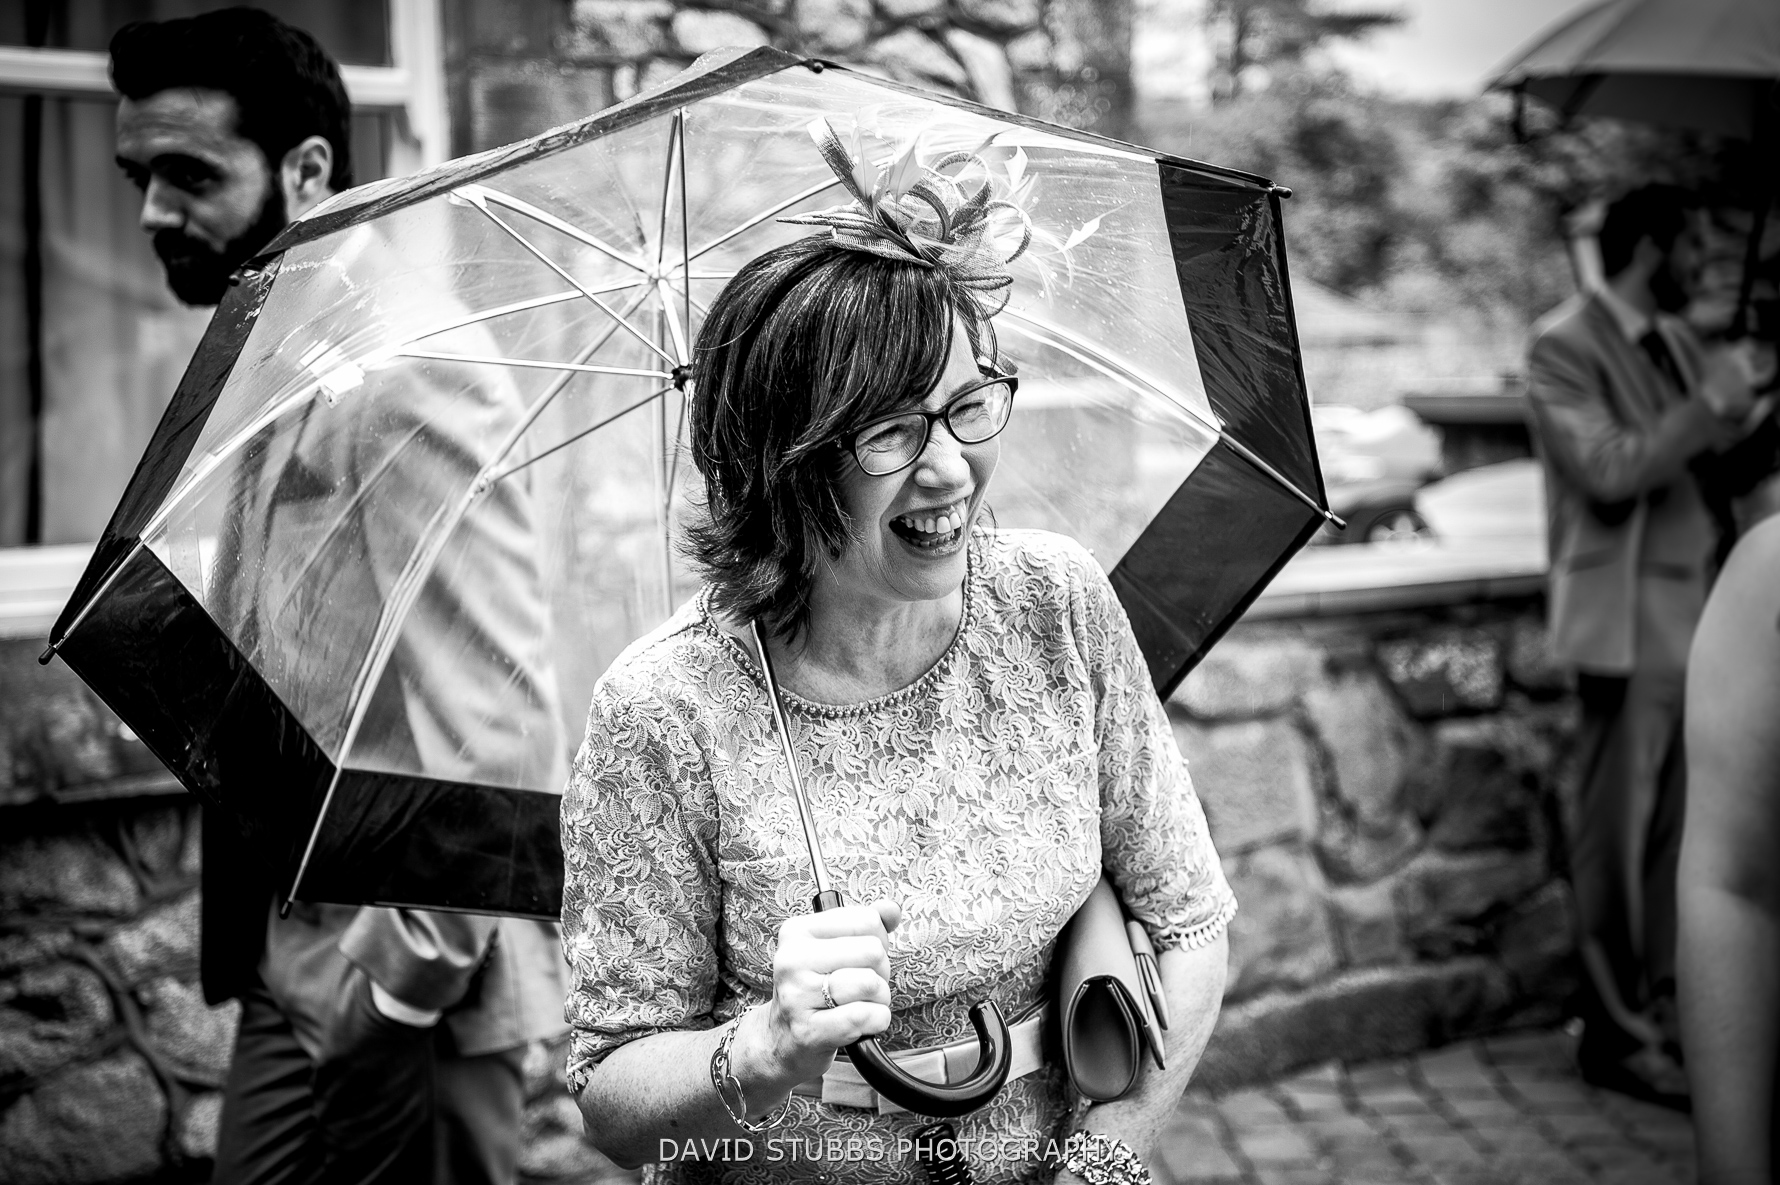 mum under umbrella in rain